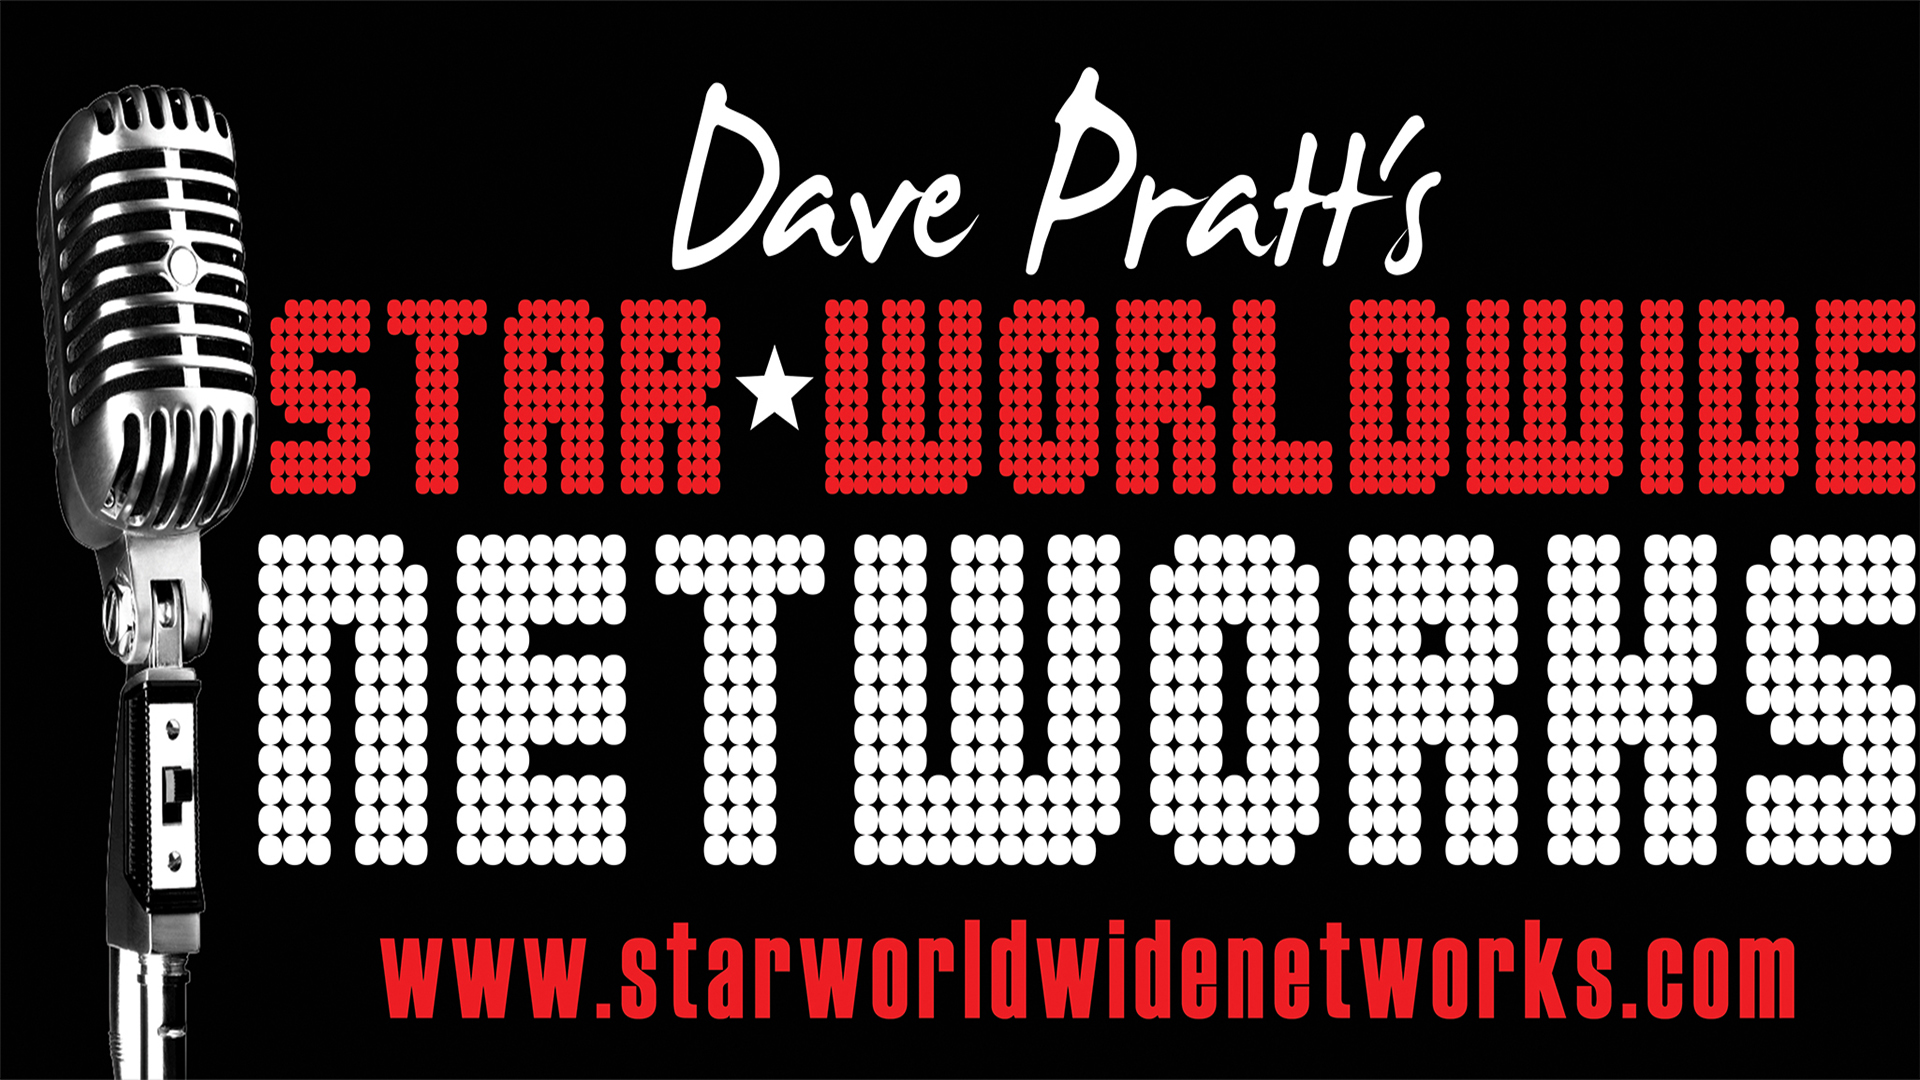 Star Worldwide Networks